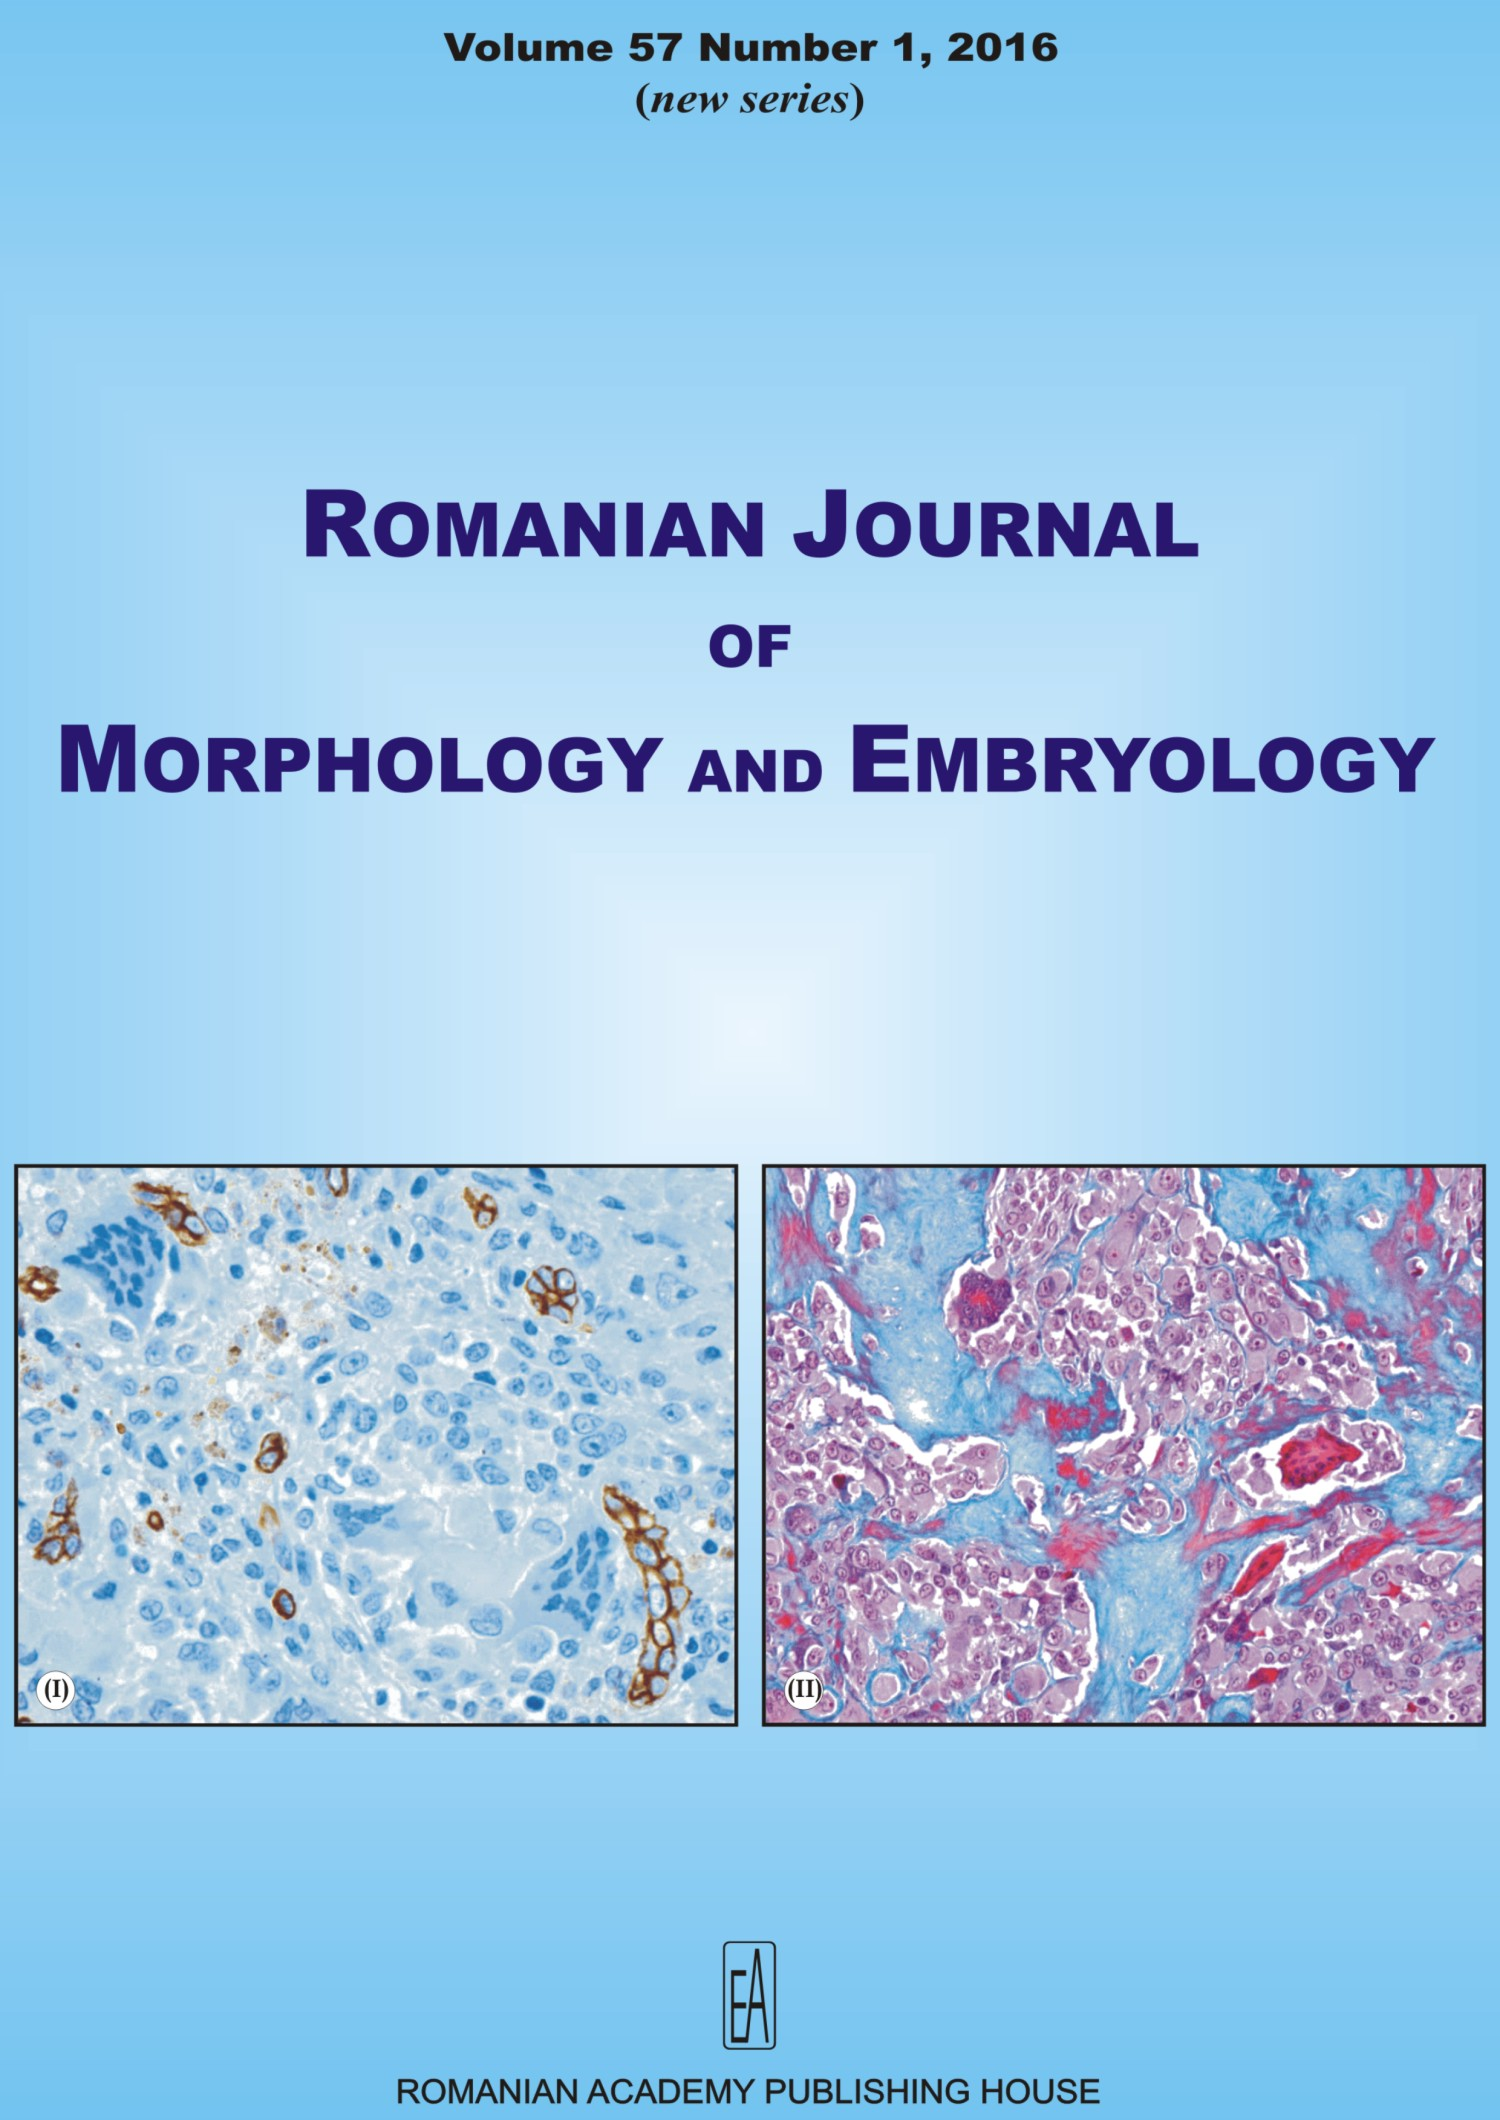 Romanian Journal of Morphology and Embryology, vol. 57 no. 1, 2016